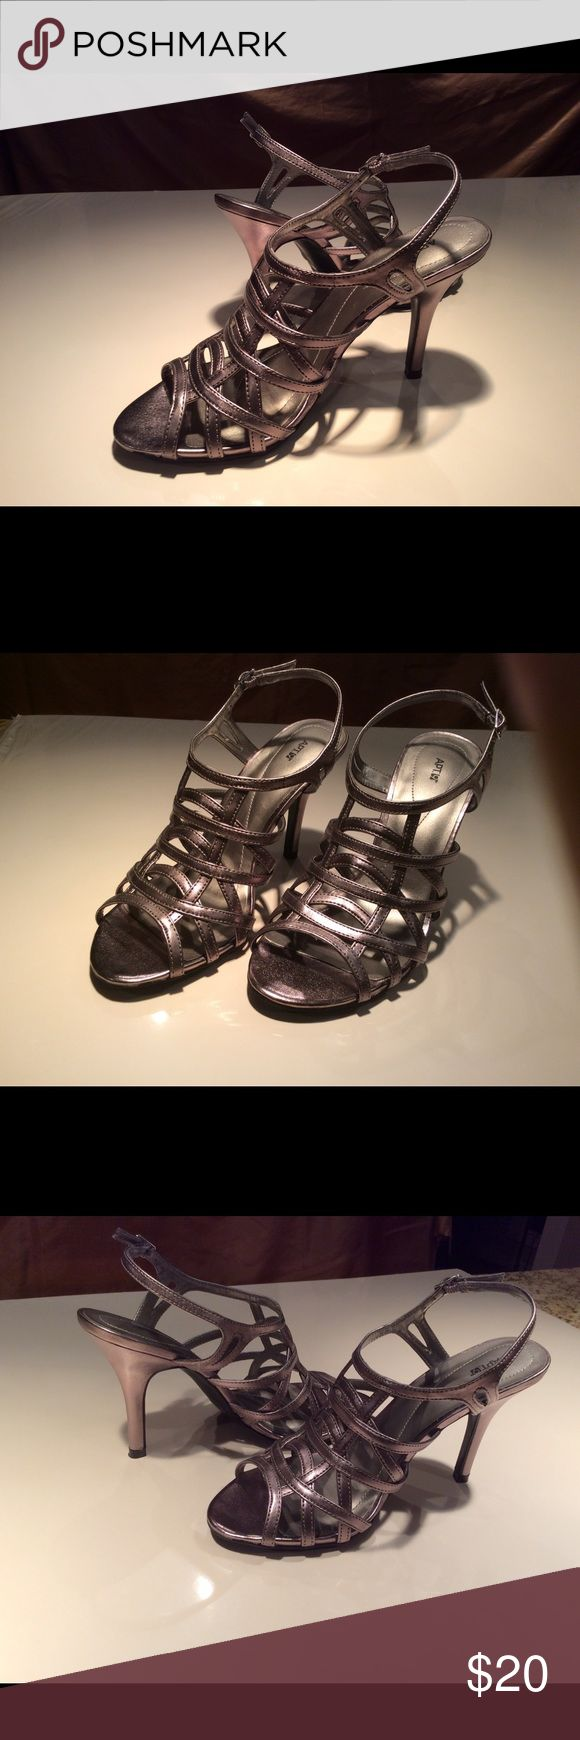 "Apt 9 Pewter metallic strappy high heel shoes Apt 9 ""Paytin"" pewter metallic strappy dress shoes. 4"" heel. like new, worn once. Sz. 7.5 true to size Apt 9 Shoes Heels"